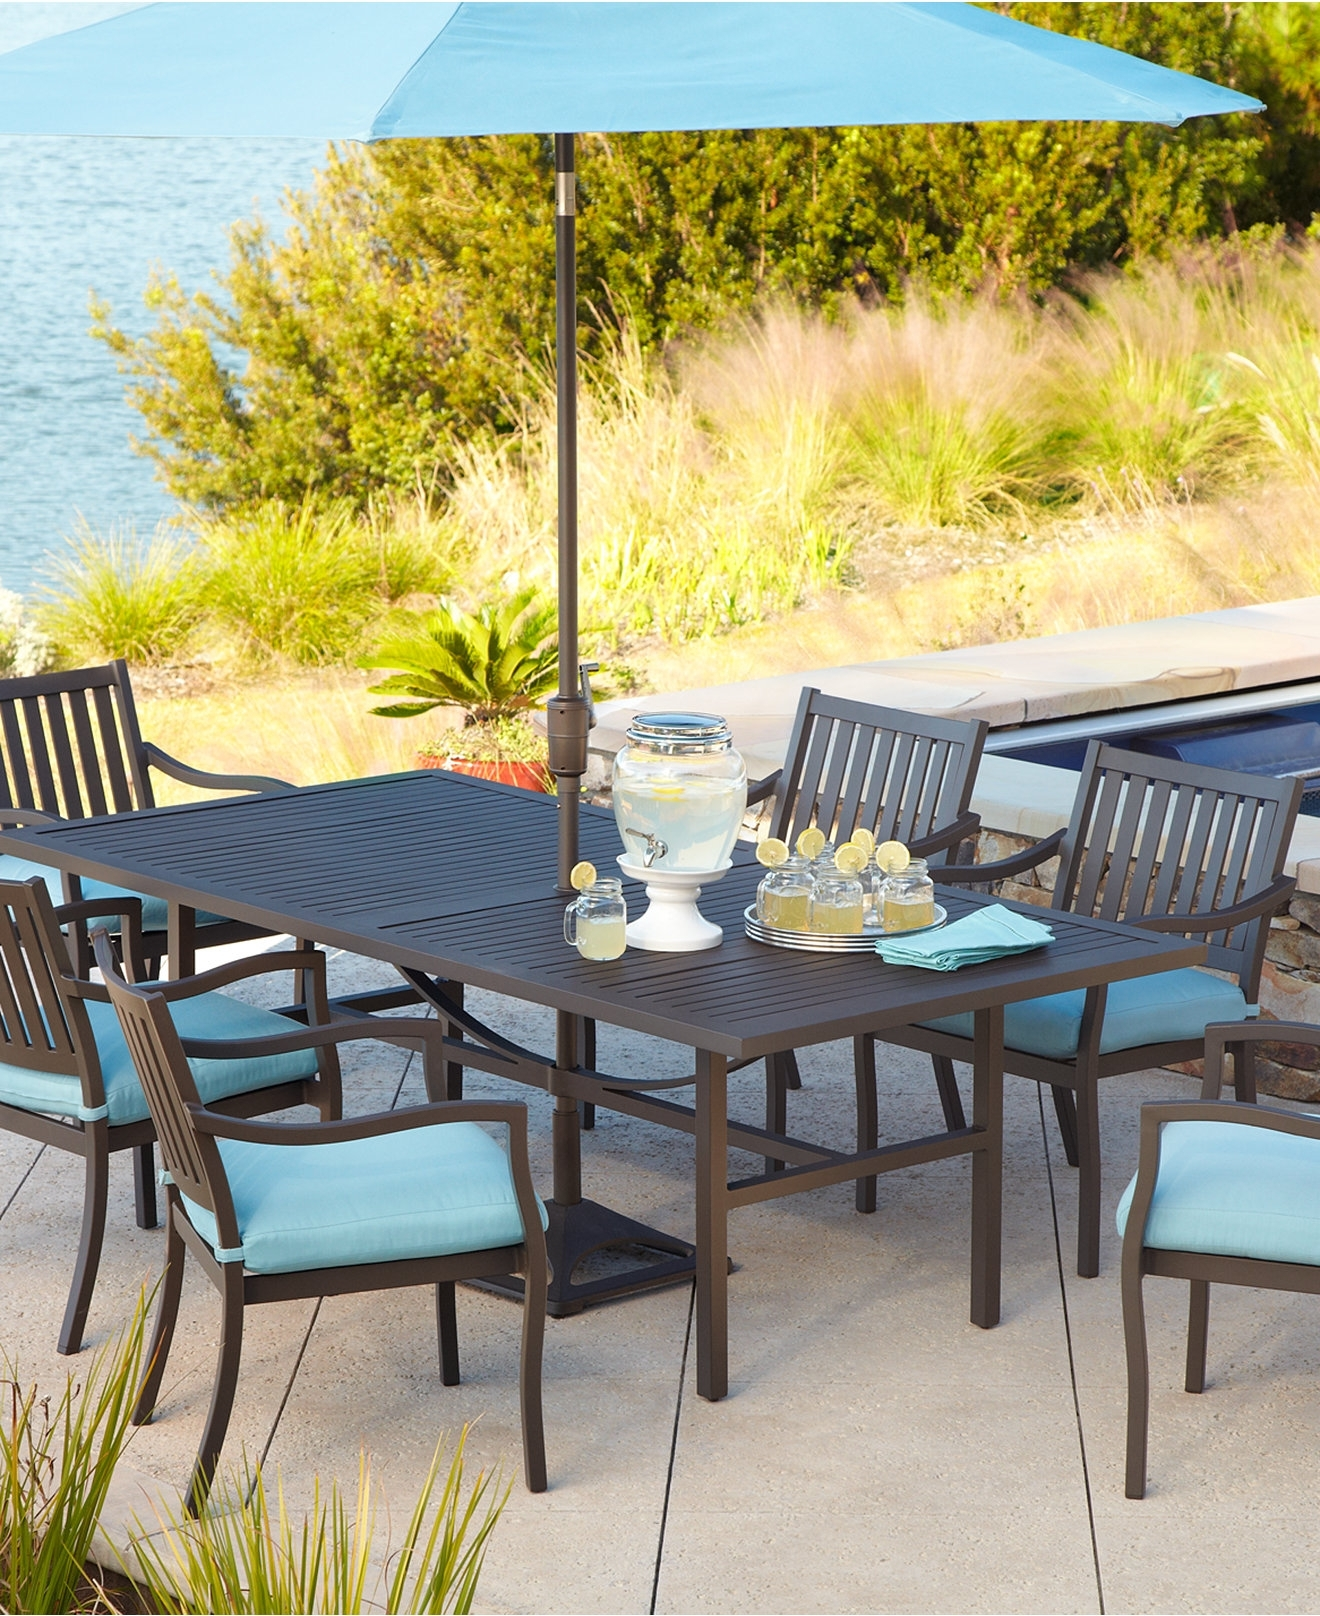 Most Current Patio: Awesome Patio Umbrella Set Patio Furniture With Umbrella Sets Throughout Patio Dining Sets With Umbrellas (View 7 of 20)